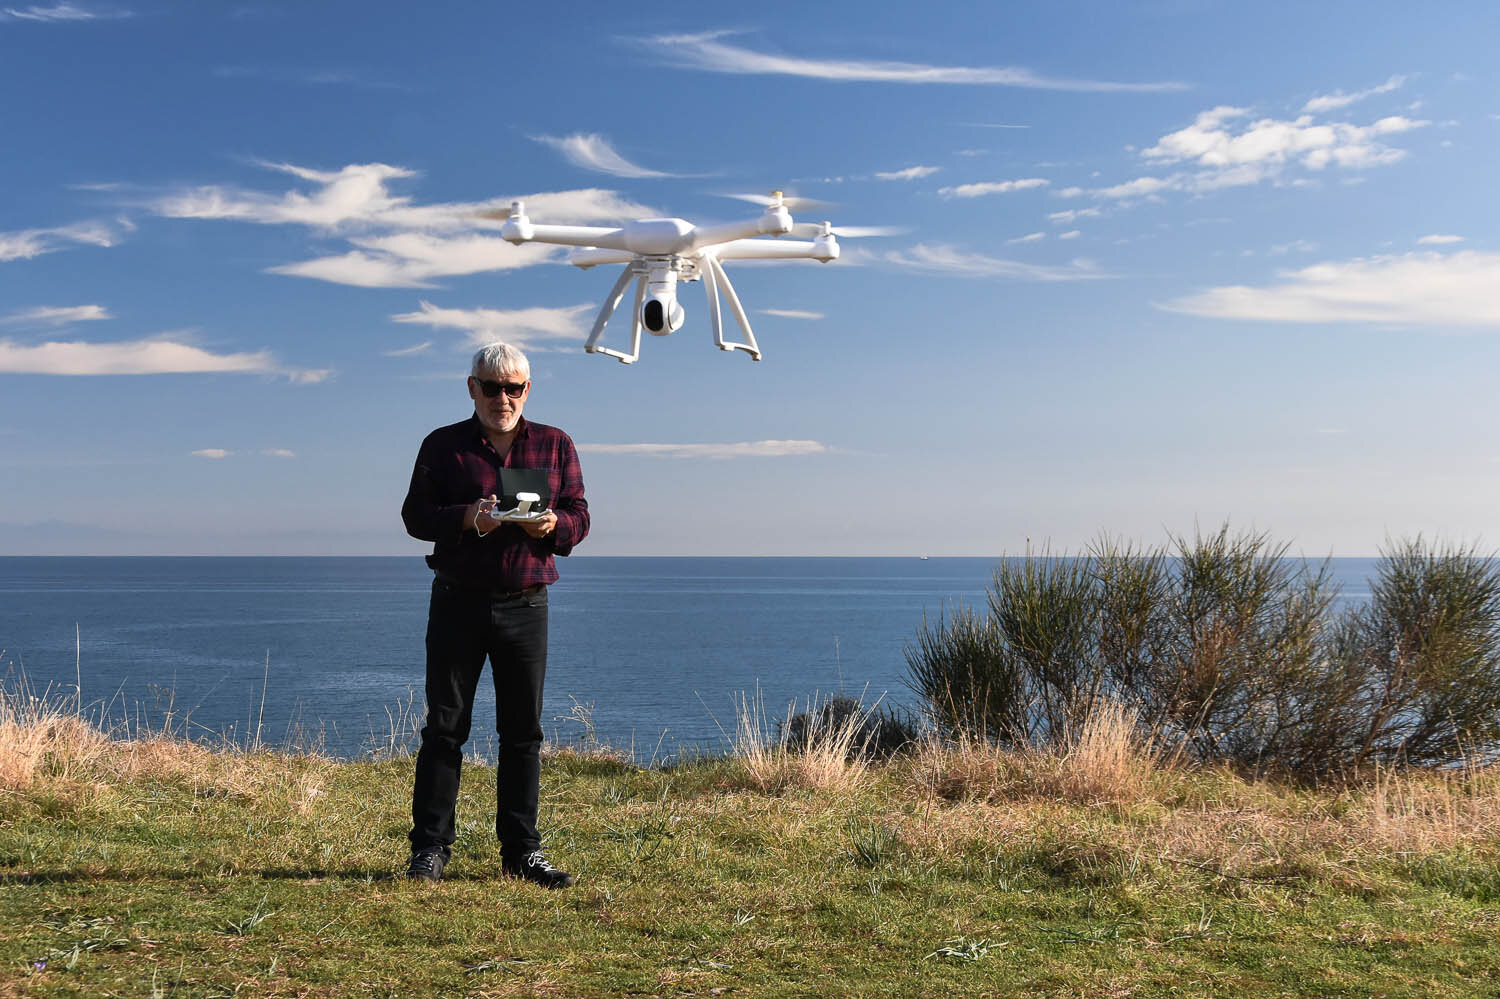 Older travellers are now using camera drones as well. Image:  © Dimitrina Lavchieva